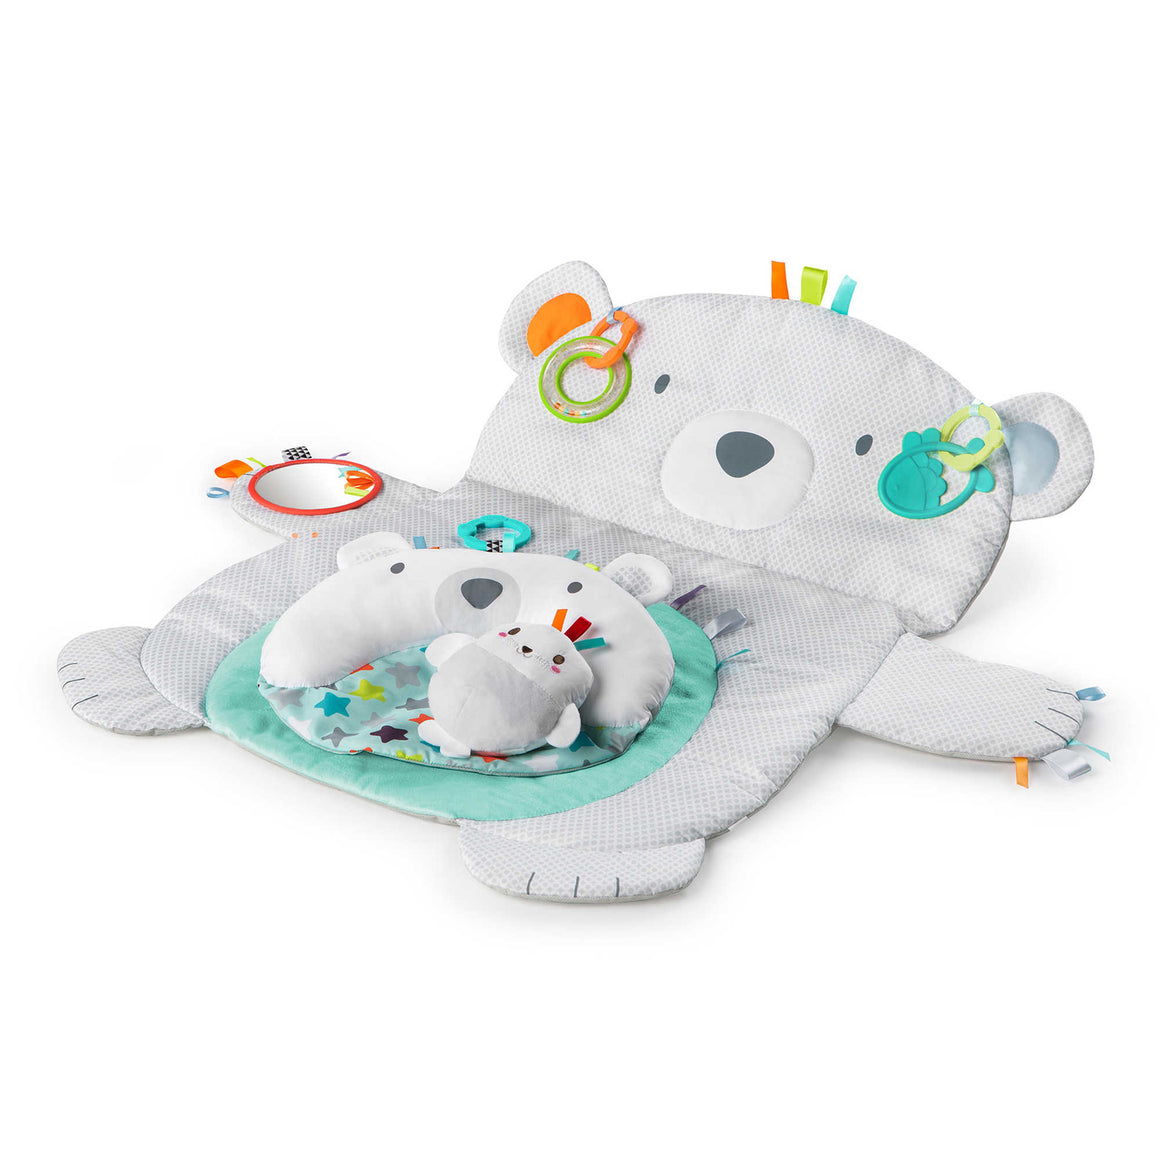 Tummy Time Prop & Play - Grey Bear